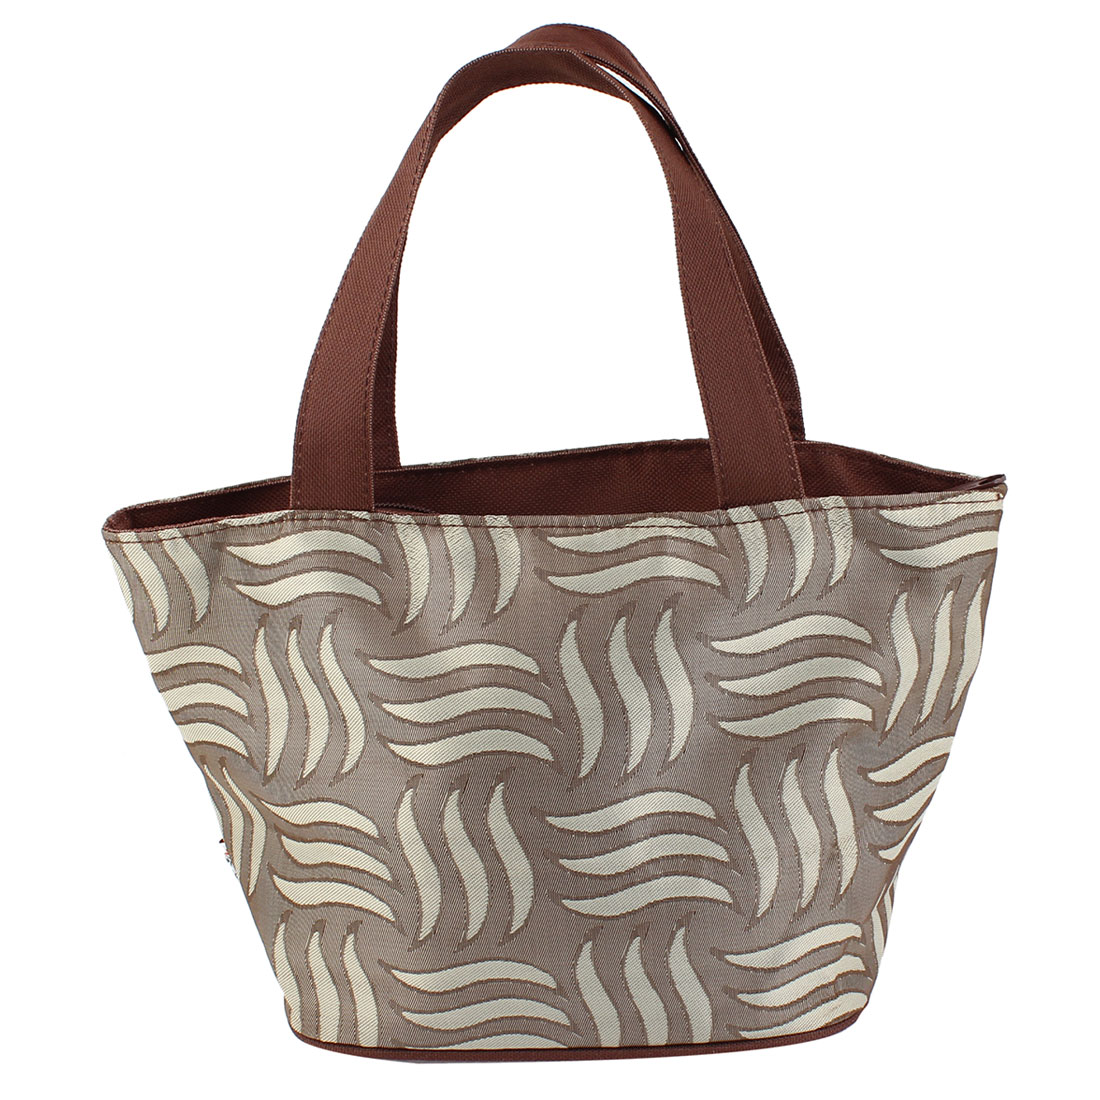 Zippered Folding Stripes Print Shopping Hand Bag Handbag Tote Light Brown